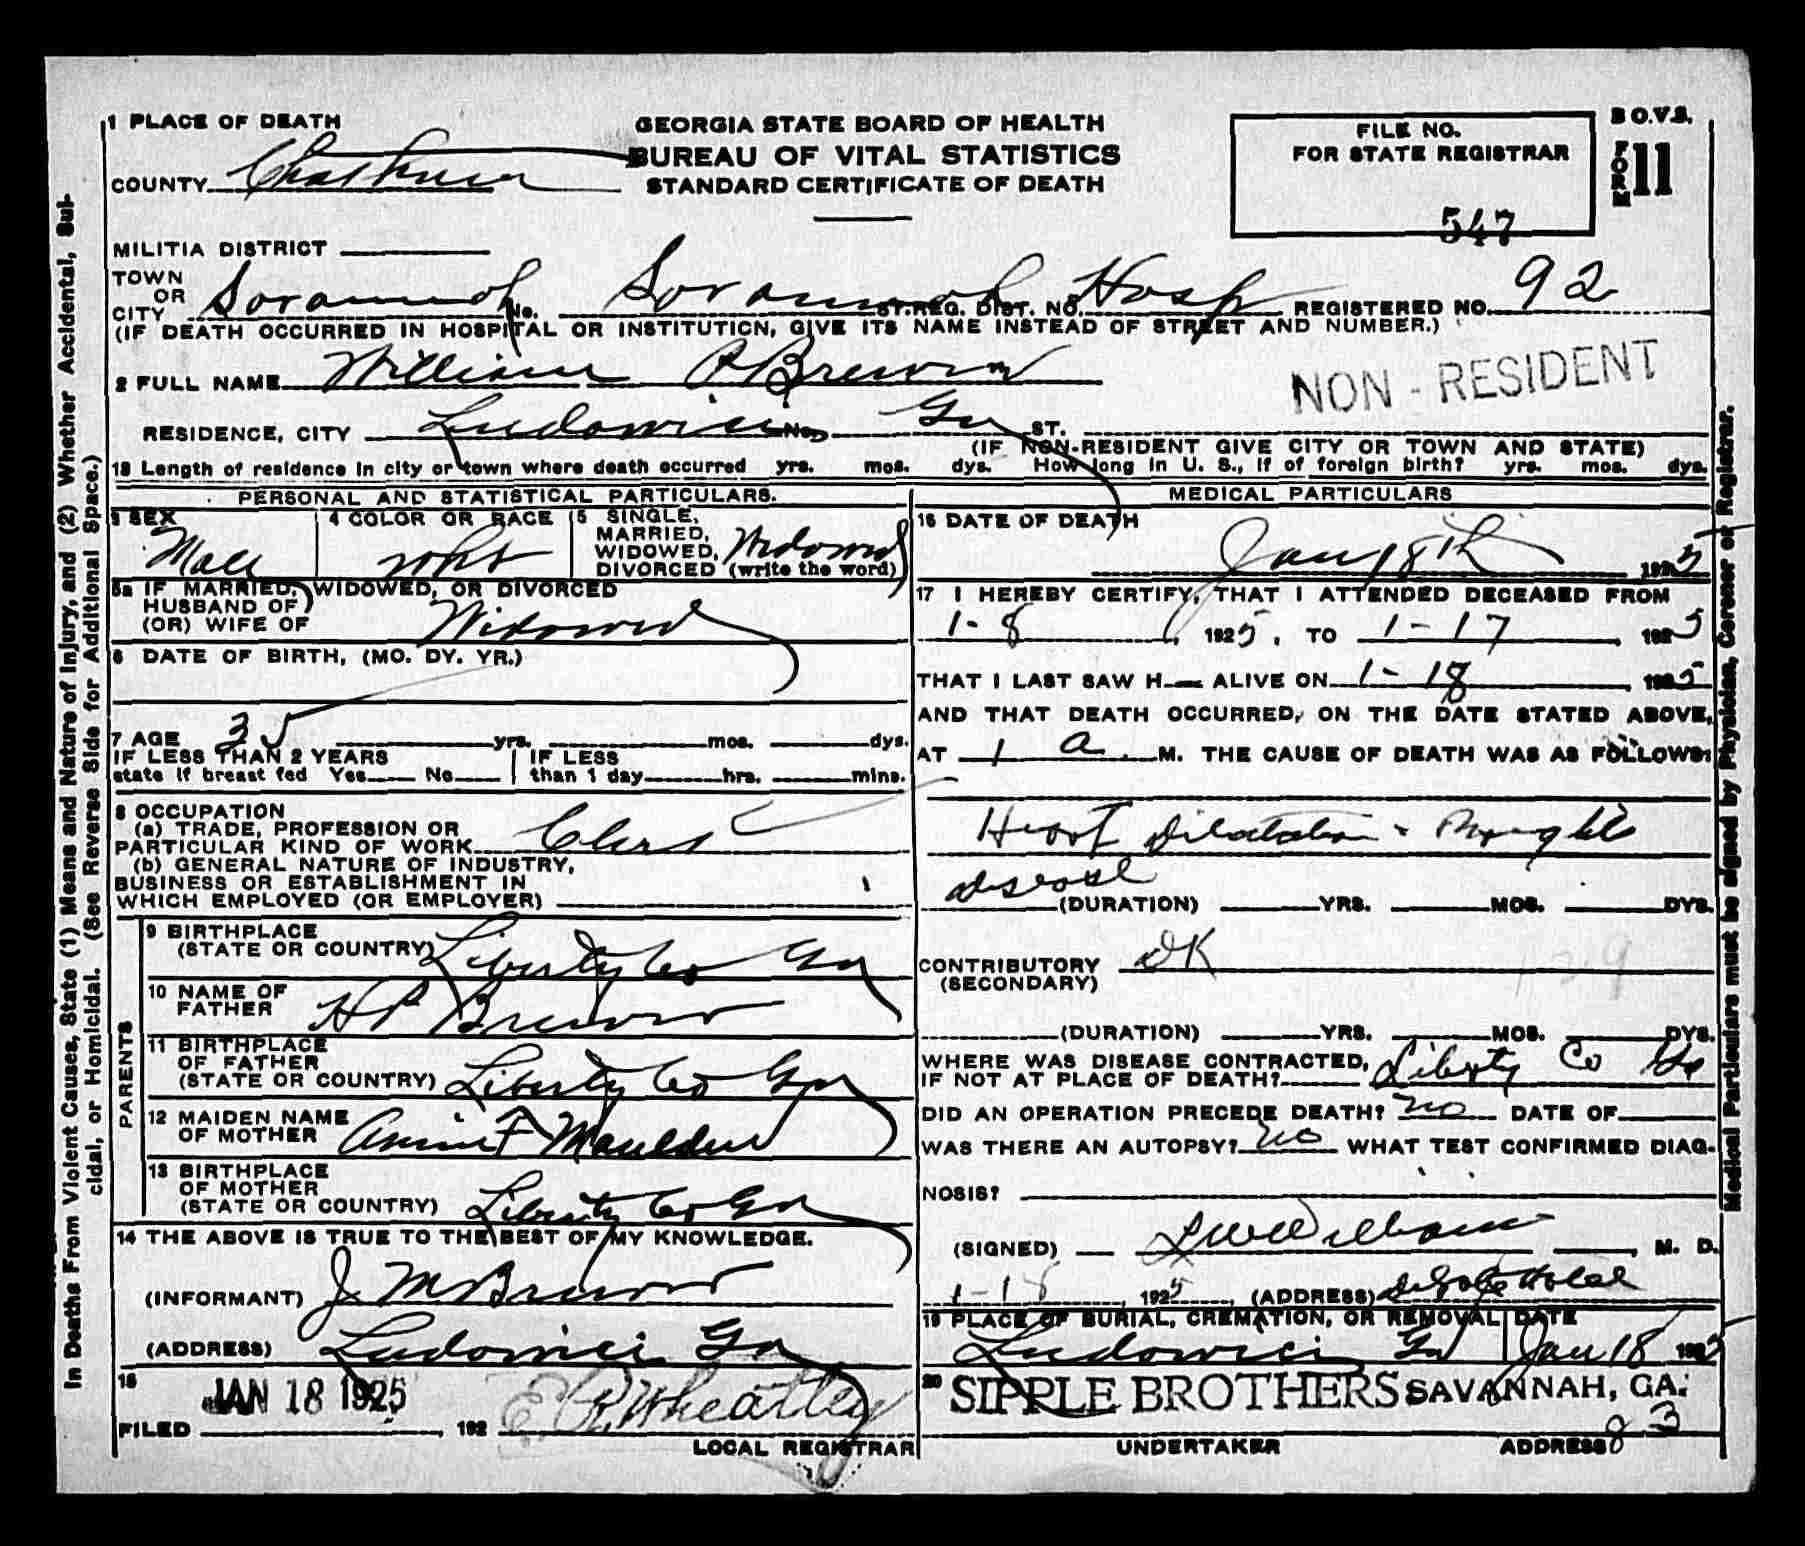 Death Certificate For William Paschal Brewer